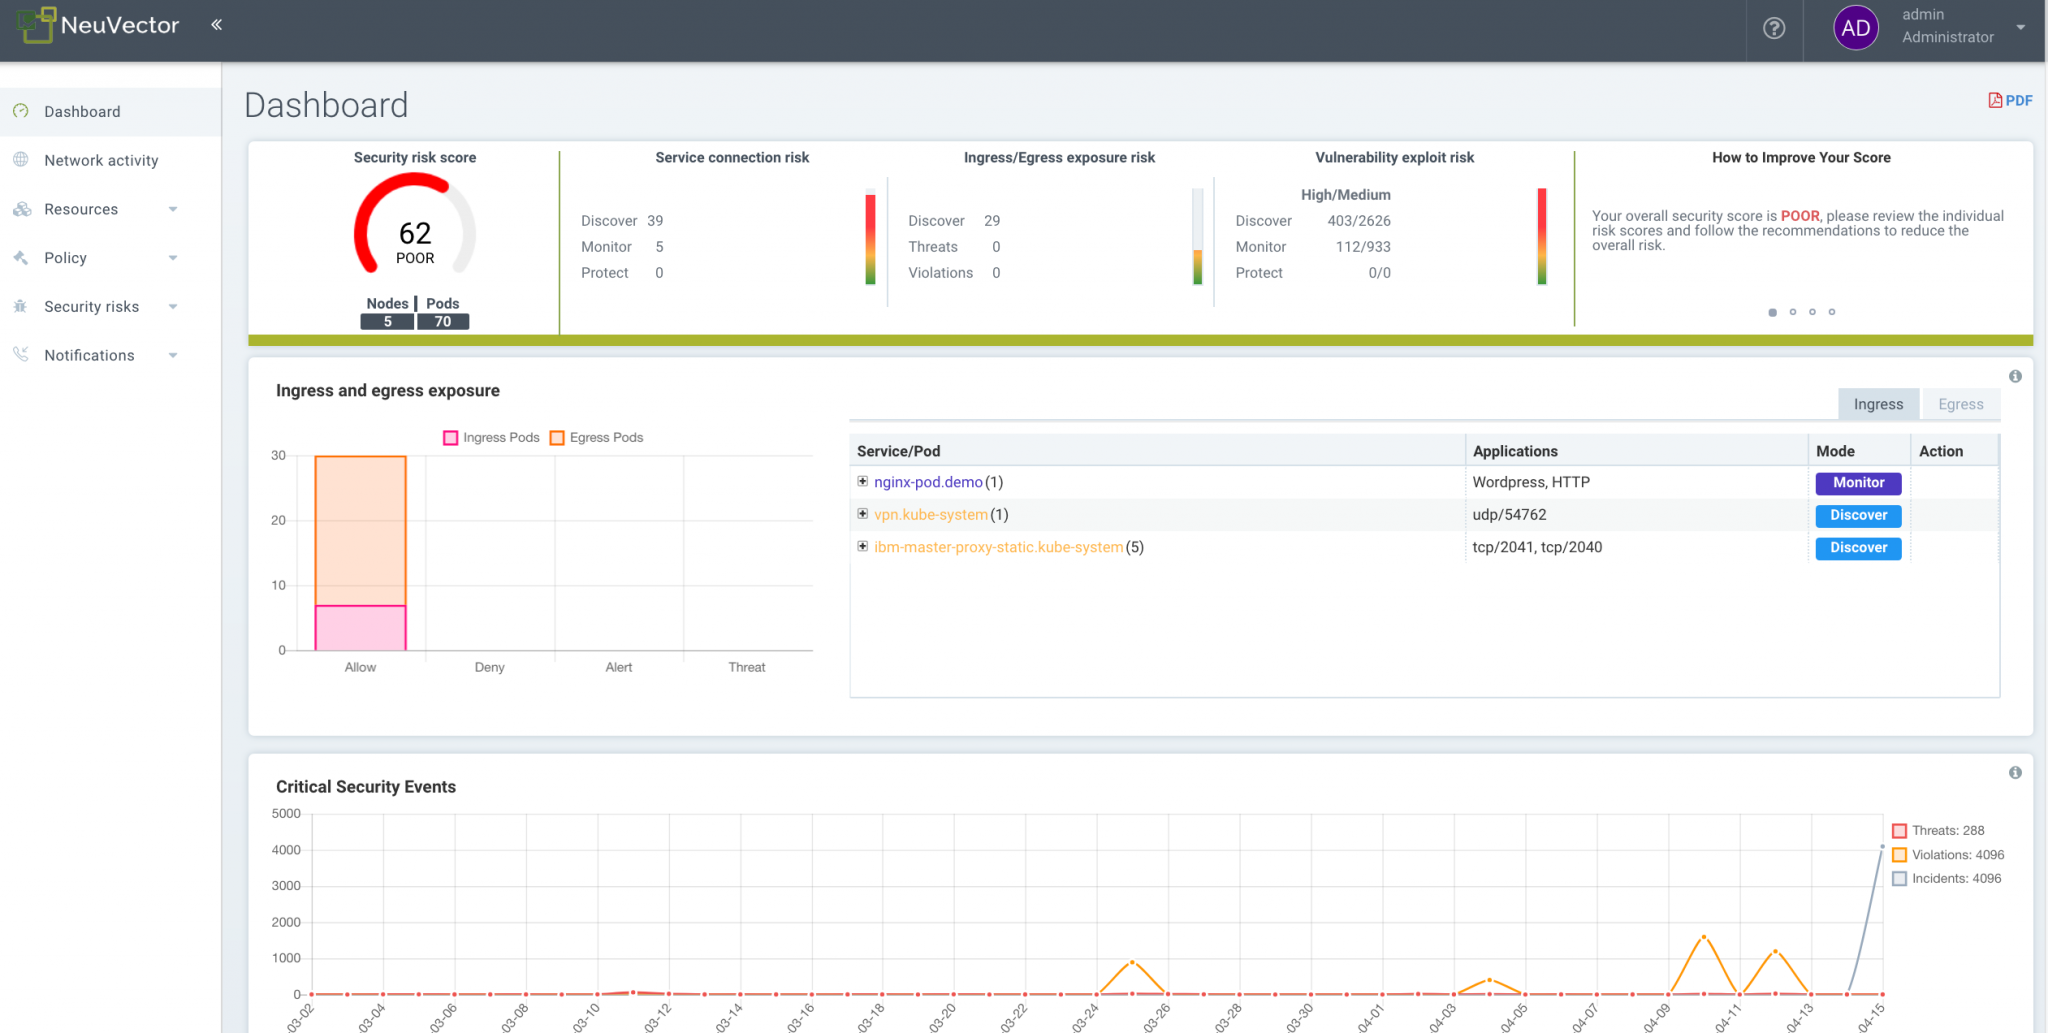 NeuVector Announces New Container Risk Reports for Vulnerability Exploits, External Attacks, and East-West Connections